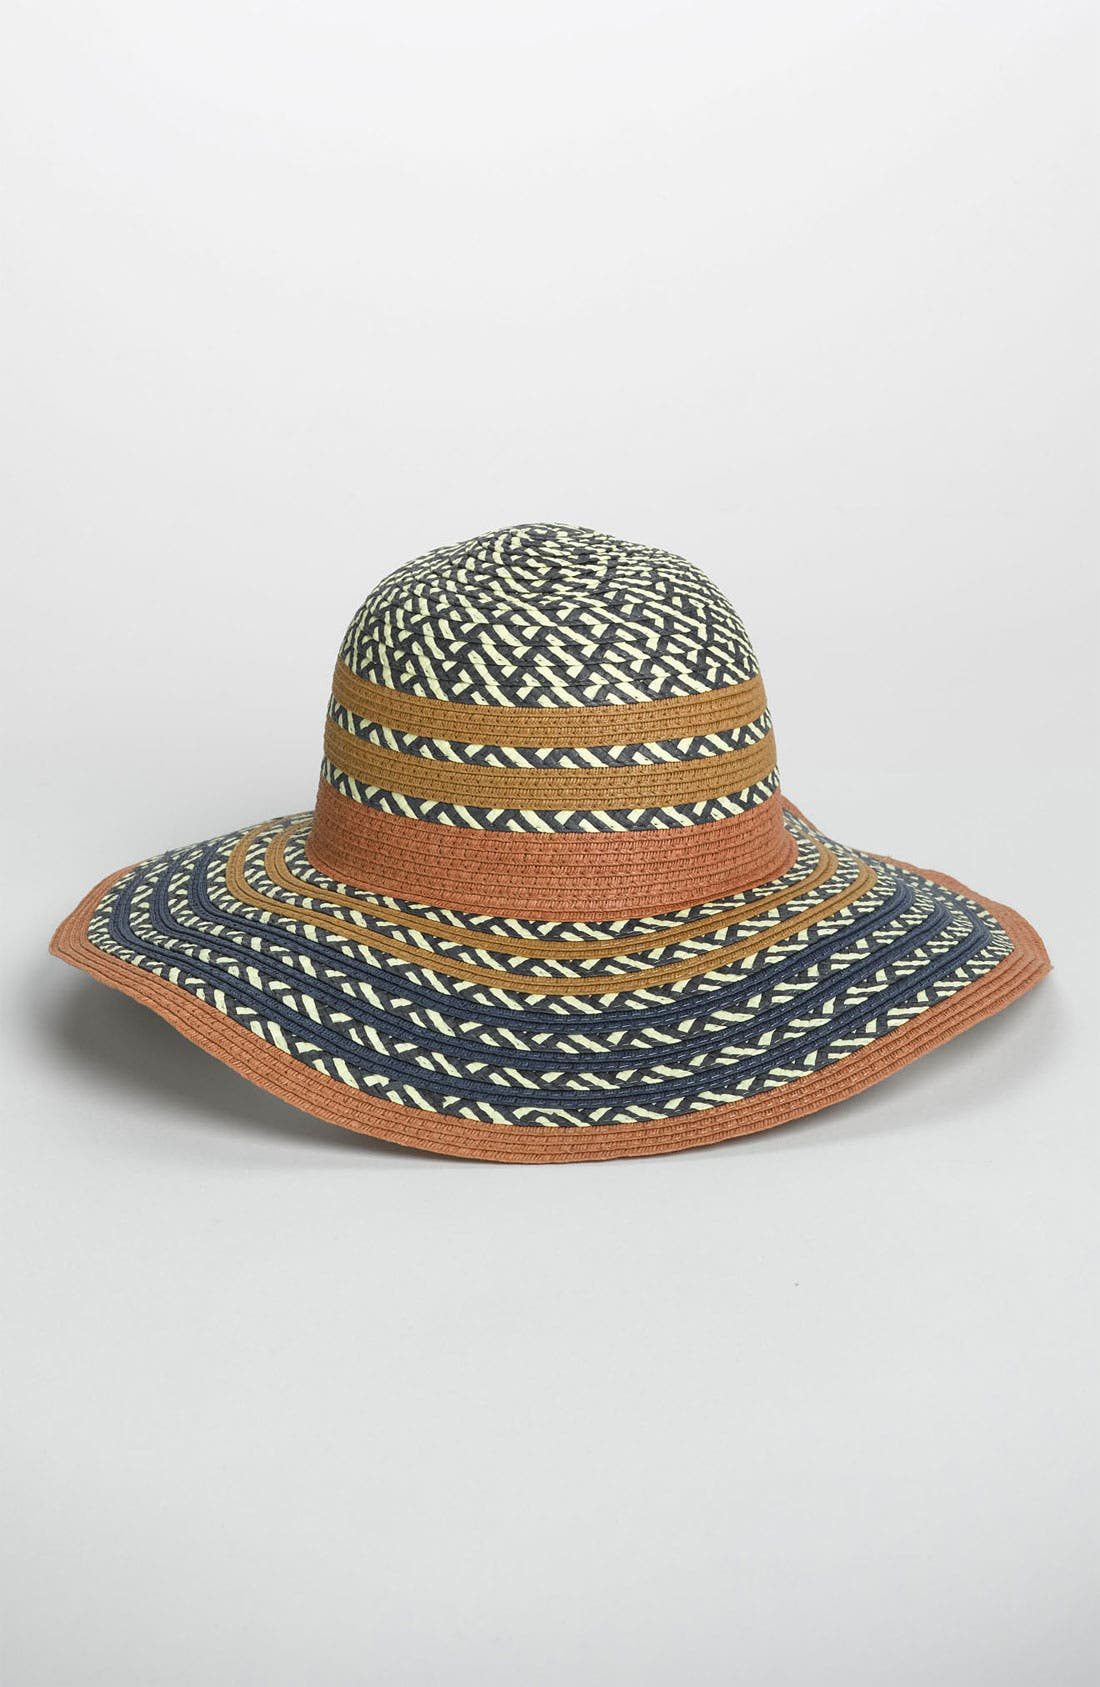 Alternate Image 1 Selected - BCBGeneration Pop Stripe Floppy Sun Hat